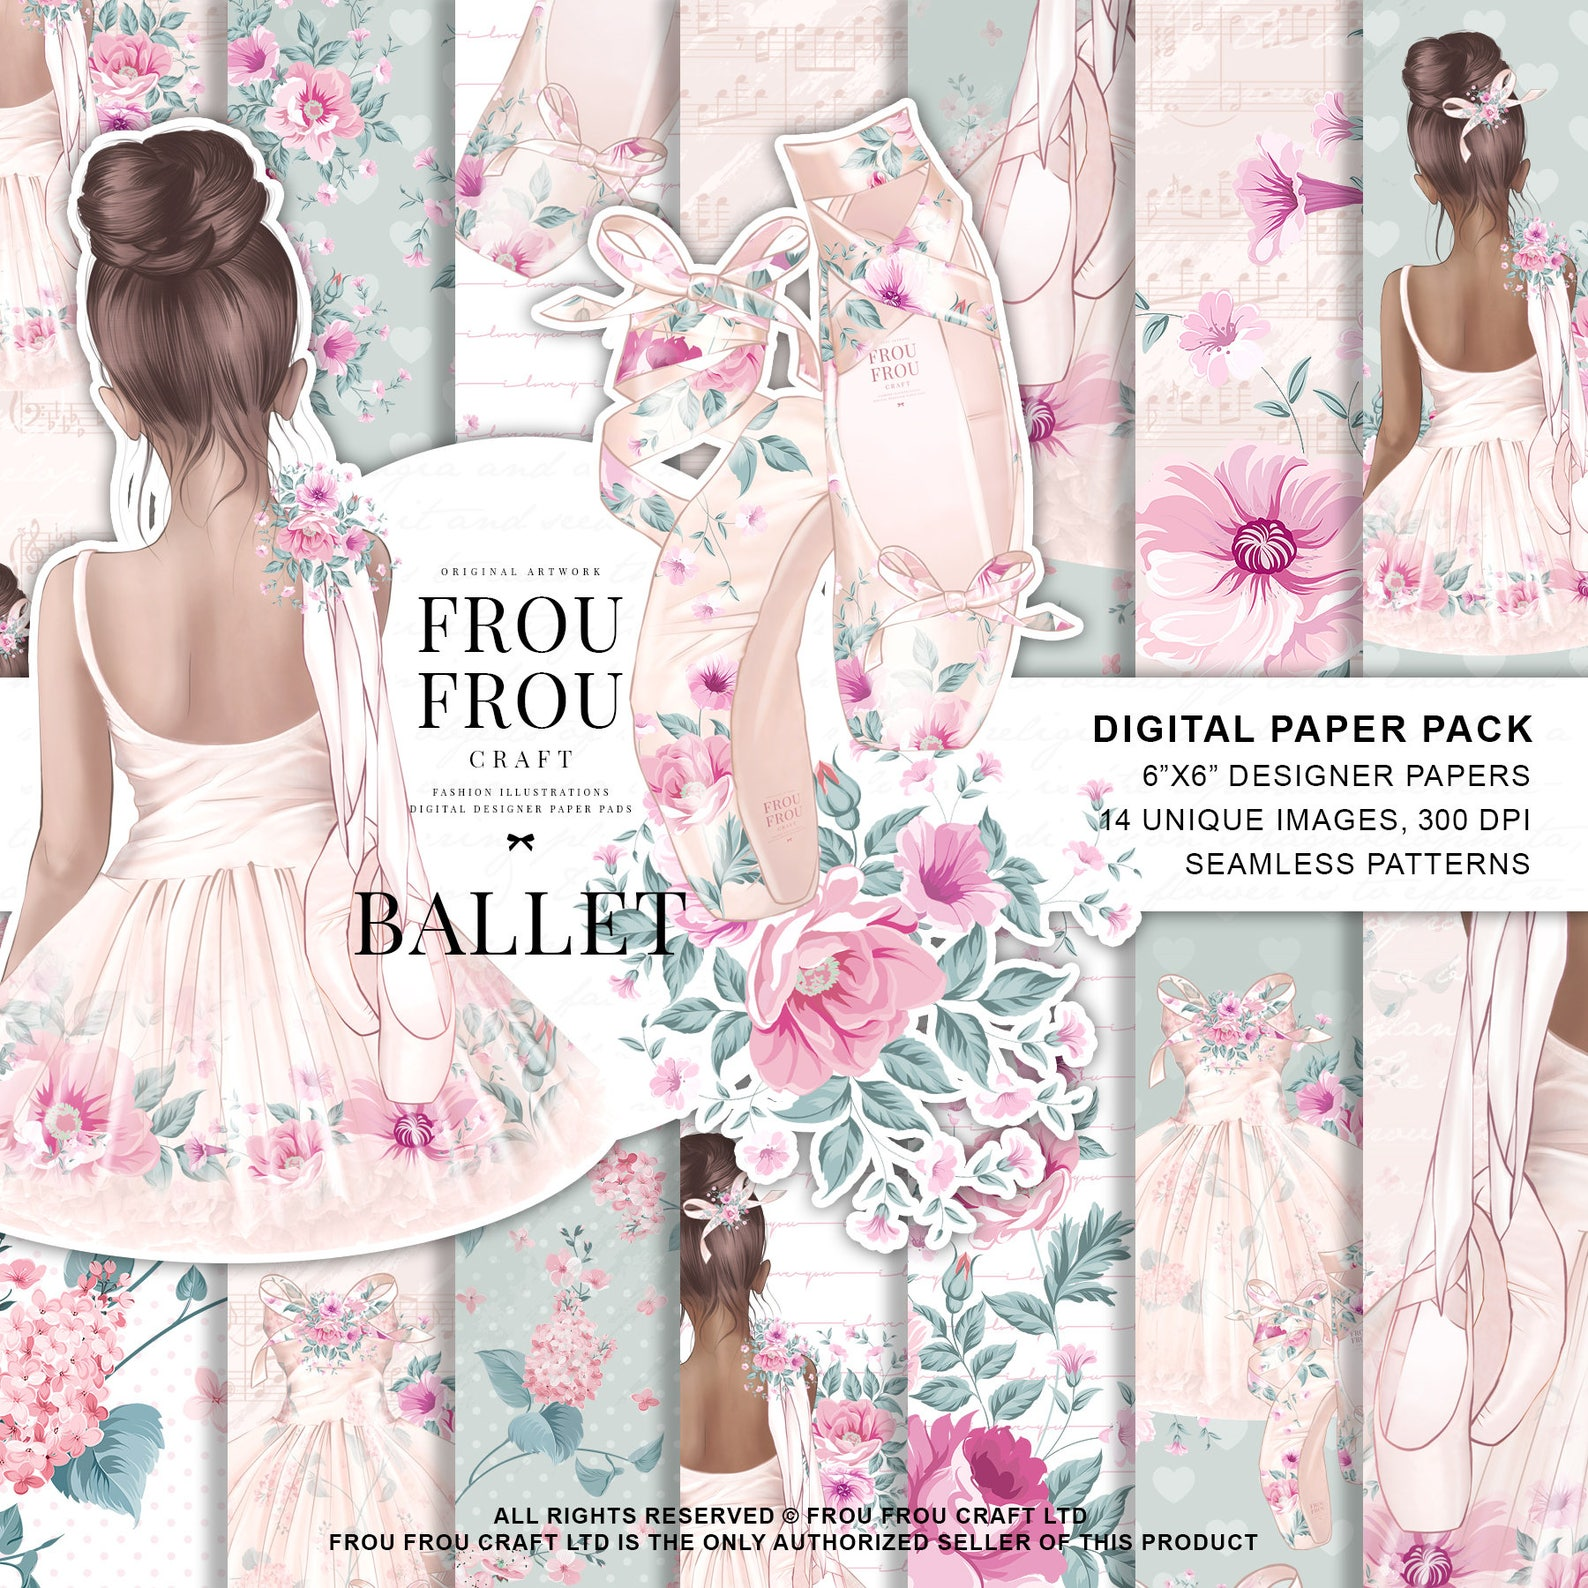 ballet paper pack little ballerina digital designer pad dancer backdrop nursery wallpaper birthday girl peach pastel tutu dress